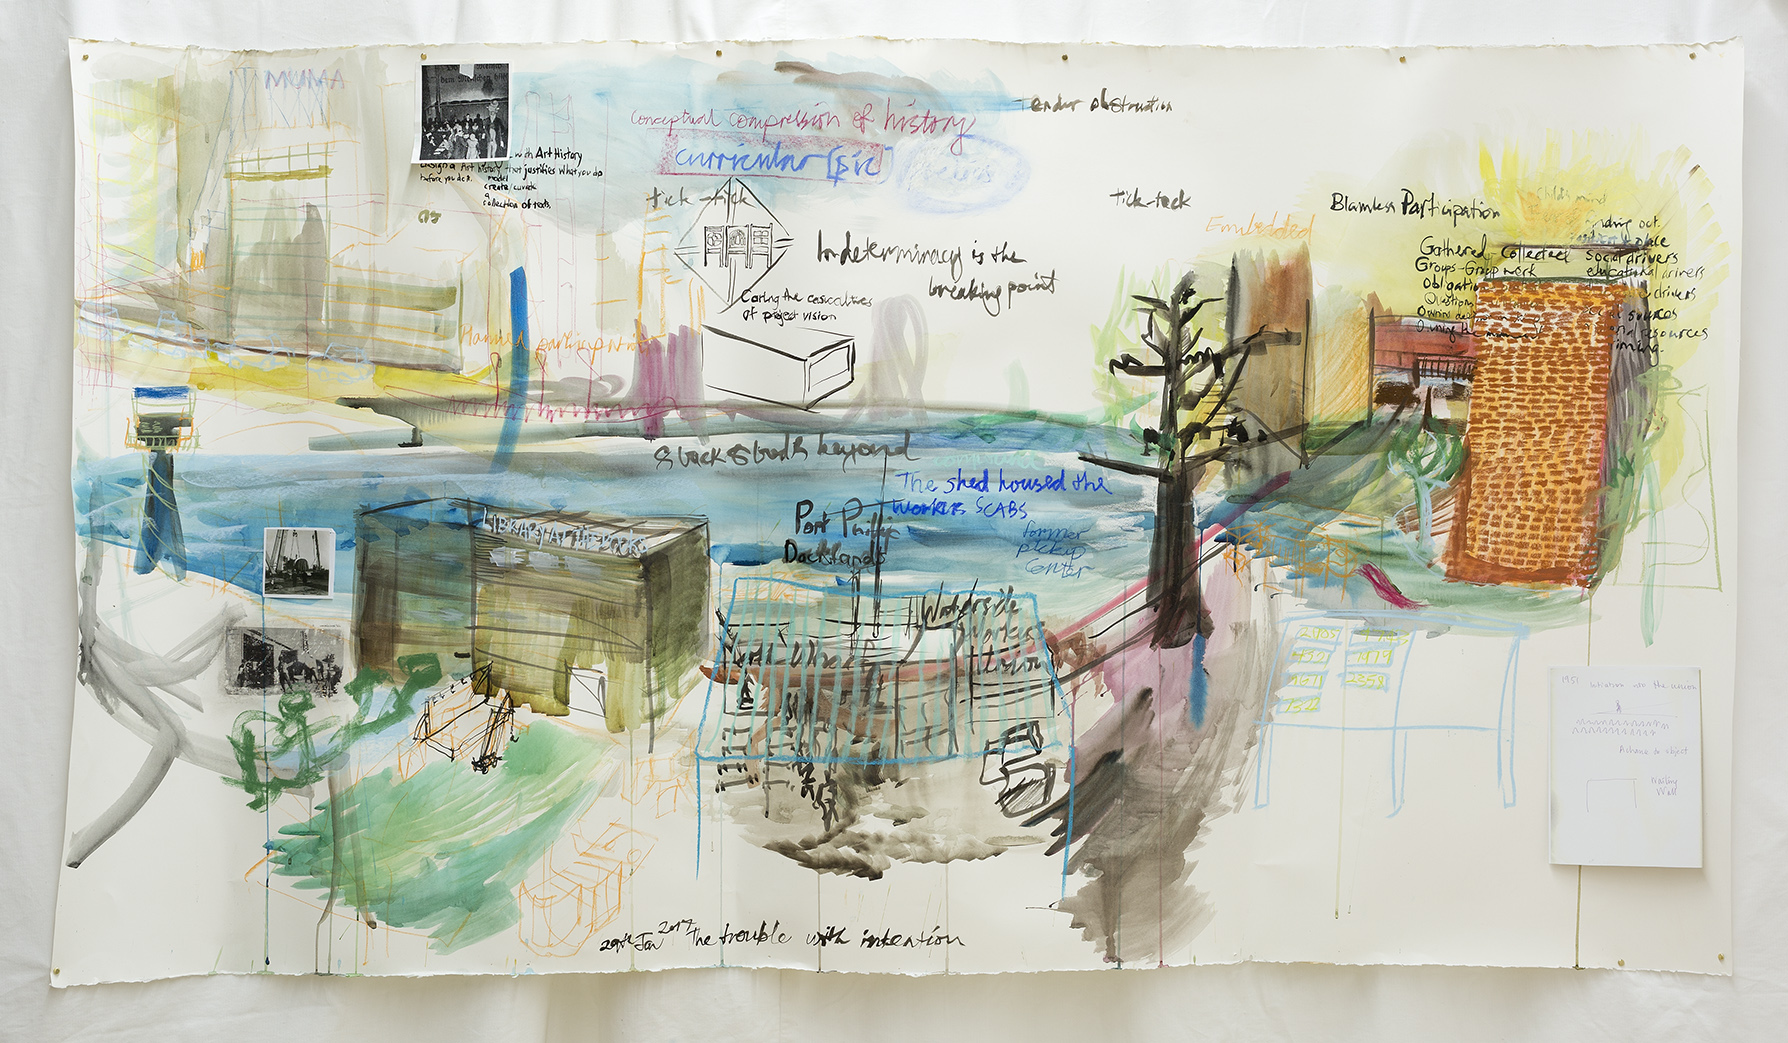 Kym Maxwell,  The three institutes in watercolour, Monash, The Library at the Docks, Collingwood College, 2016-2017, watercolour, conte, pastel, pen, collage photocopies, watercolour paper, tape.  Image: Christian Capurro